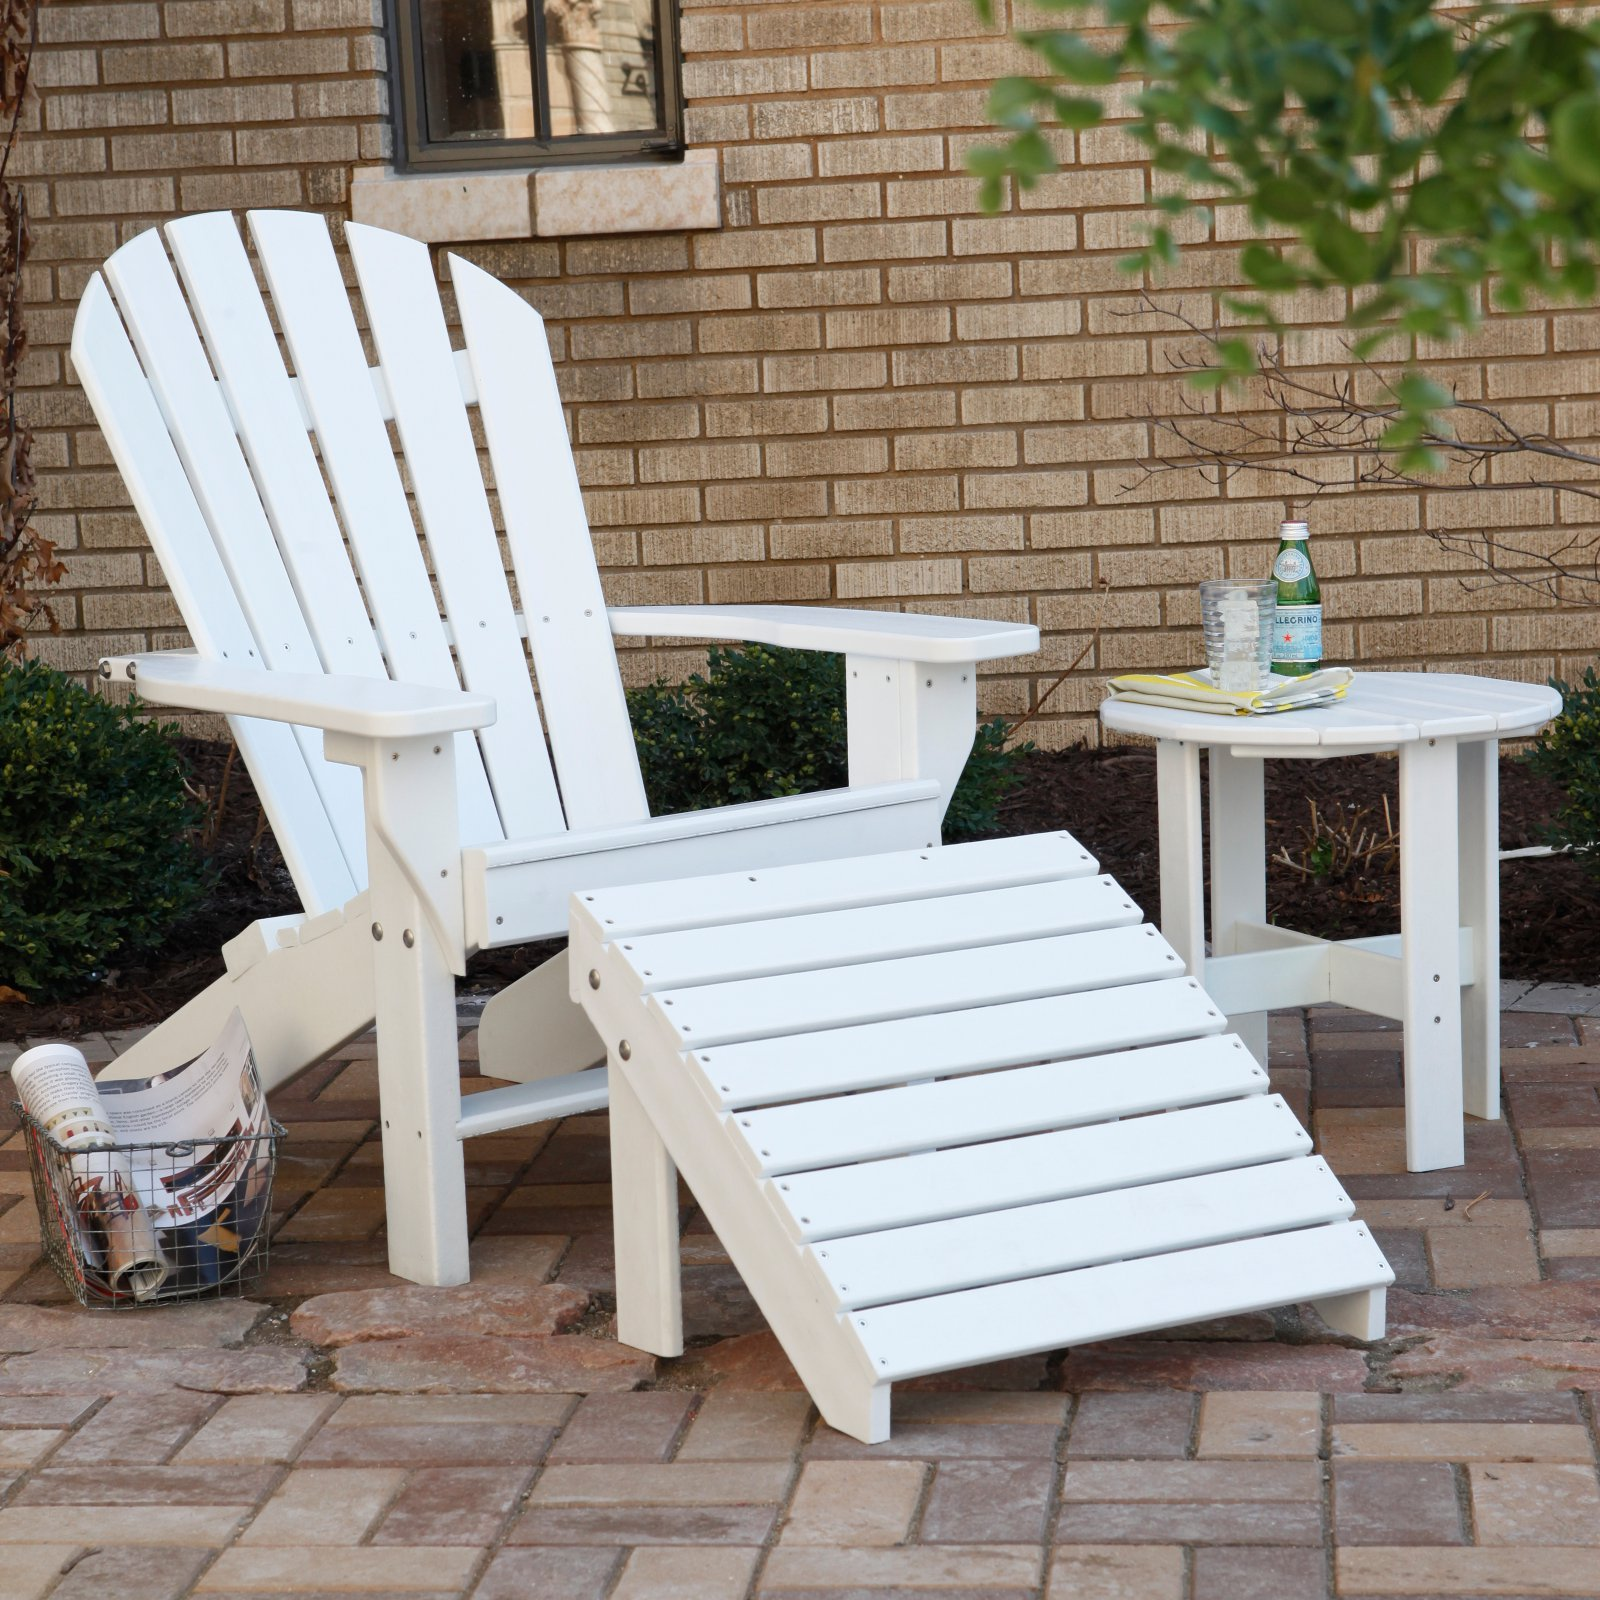 Jayhawk Plastics Seaside Adirondack Chair With Ottoman and Side Table